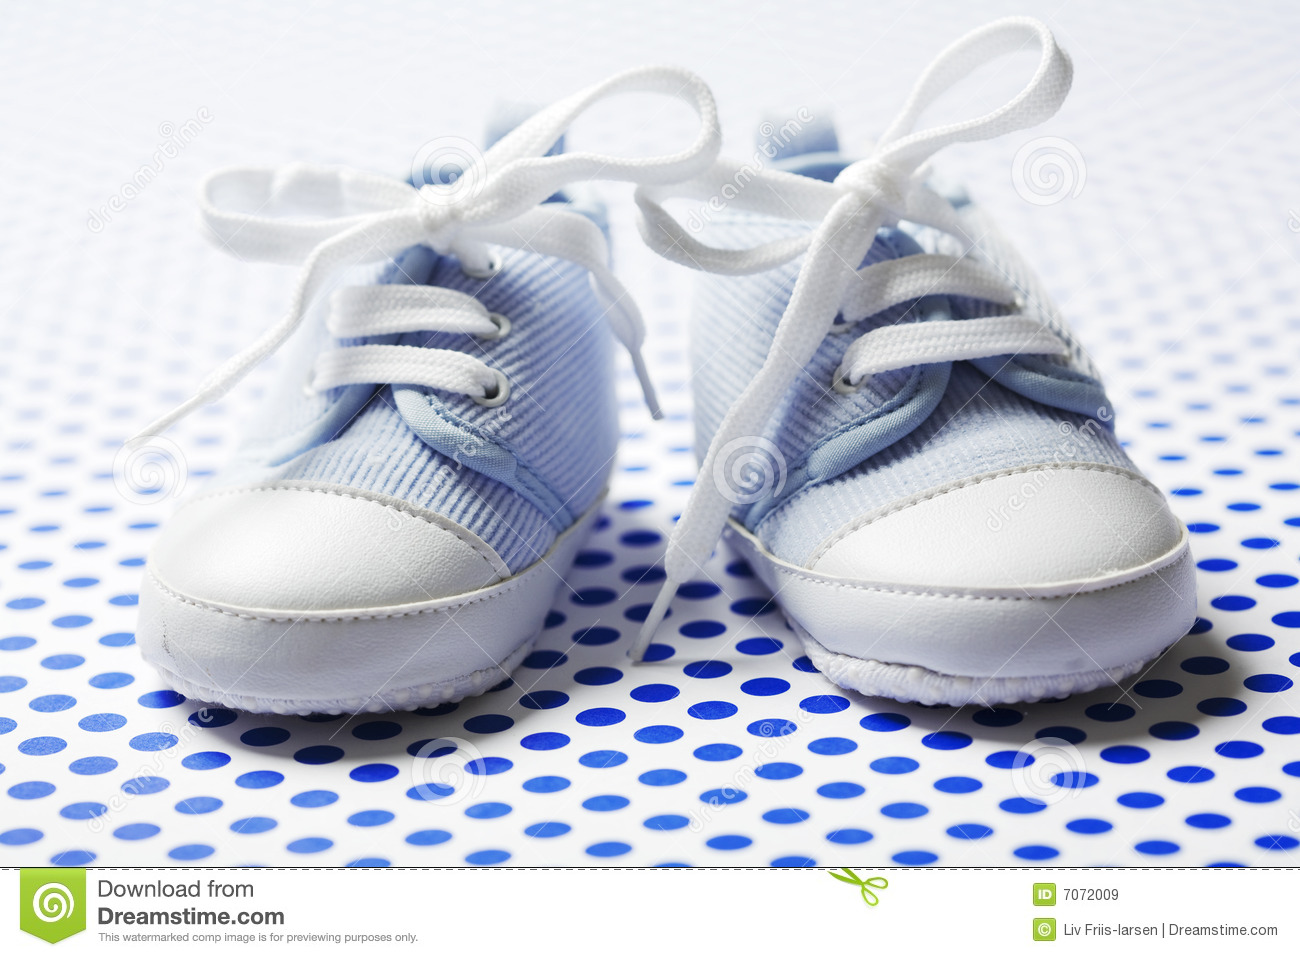 Shop Target for Baby Boys' Shoes you will love at great low prices. Spend $35+ or use your REDcard & get free 2-day shipping on most items or same-day pick-up in store.